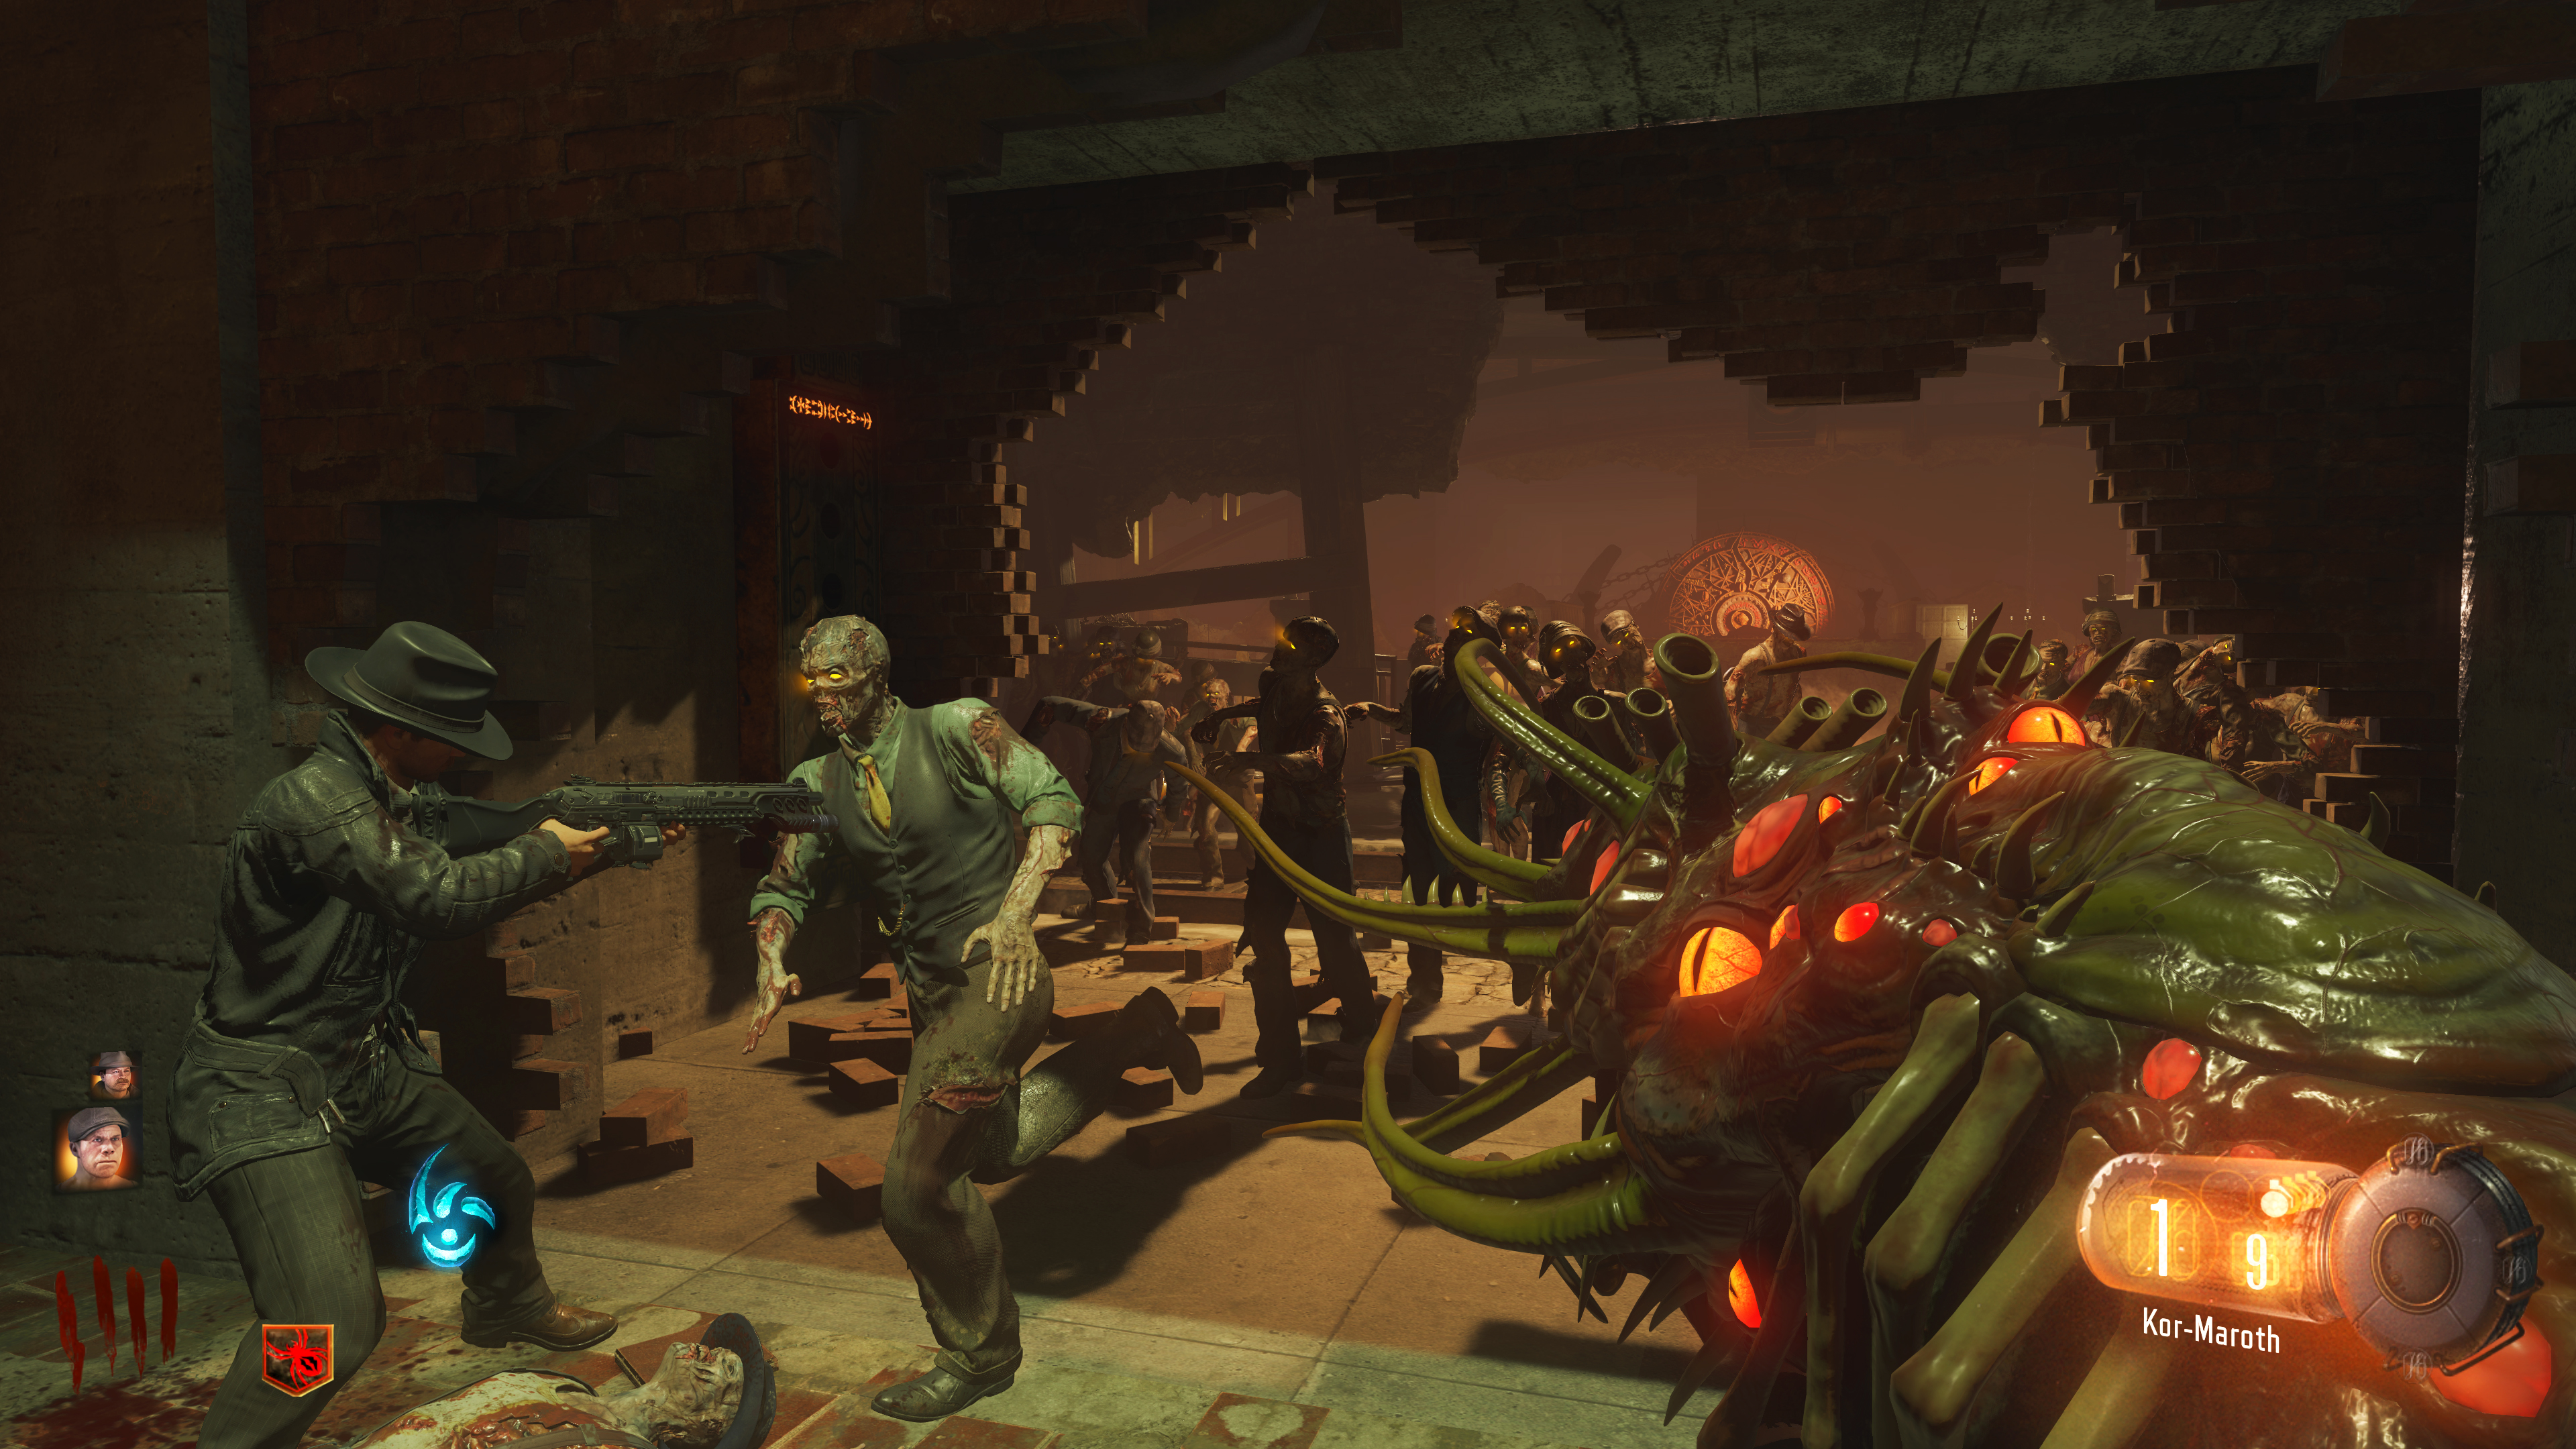 black ops 3_zombies_shadows of evil 2